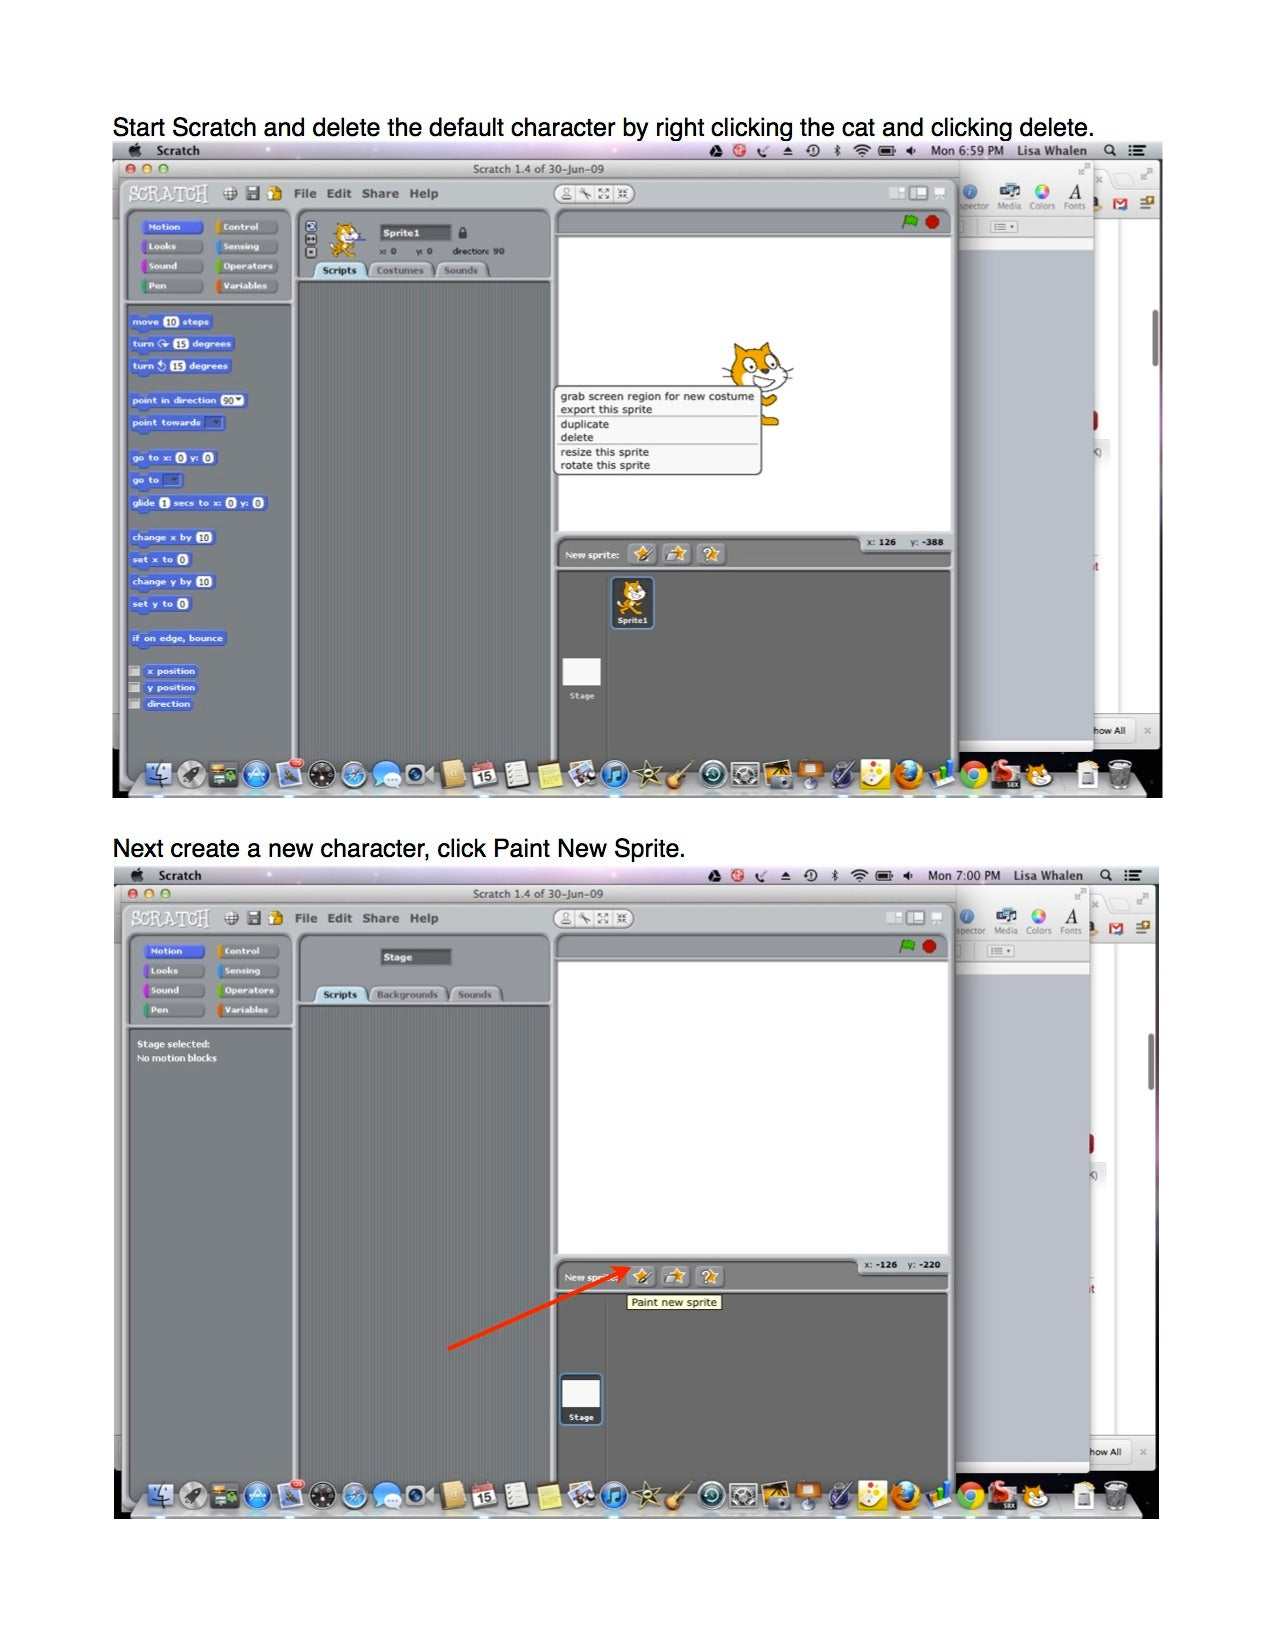 Pumpkin Tutorial for the Scratch Programming Language - Steps 1 and 2